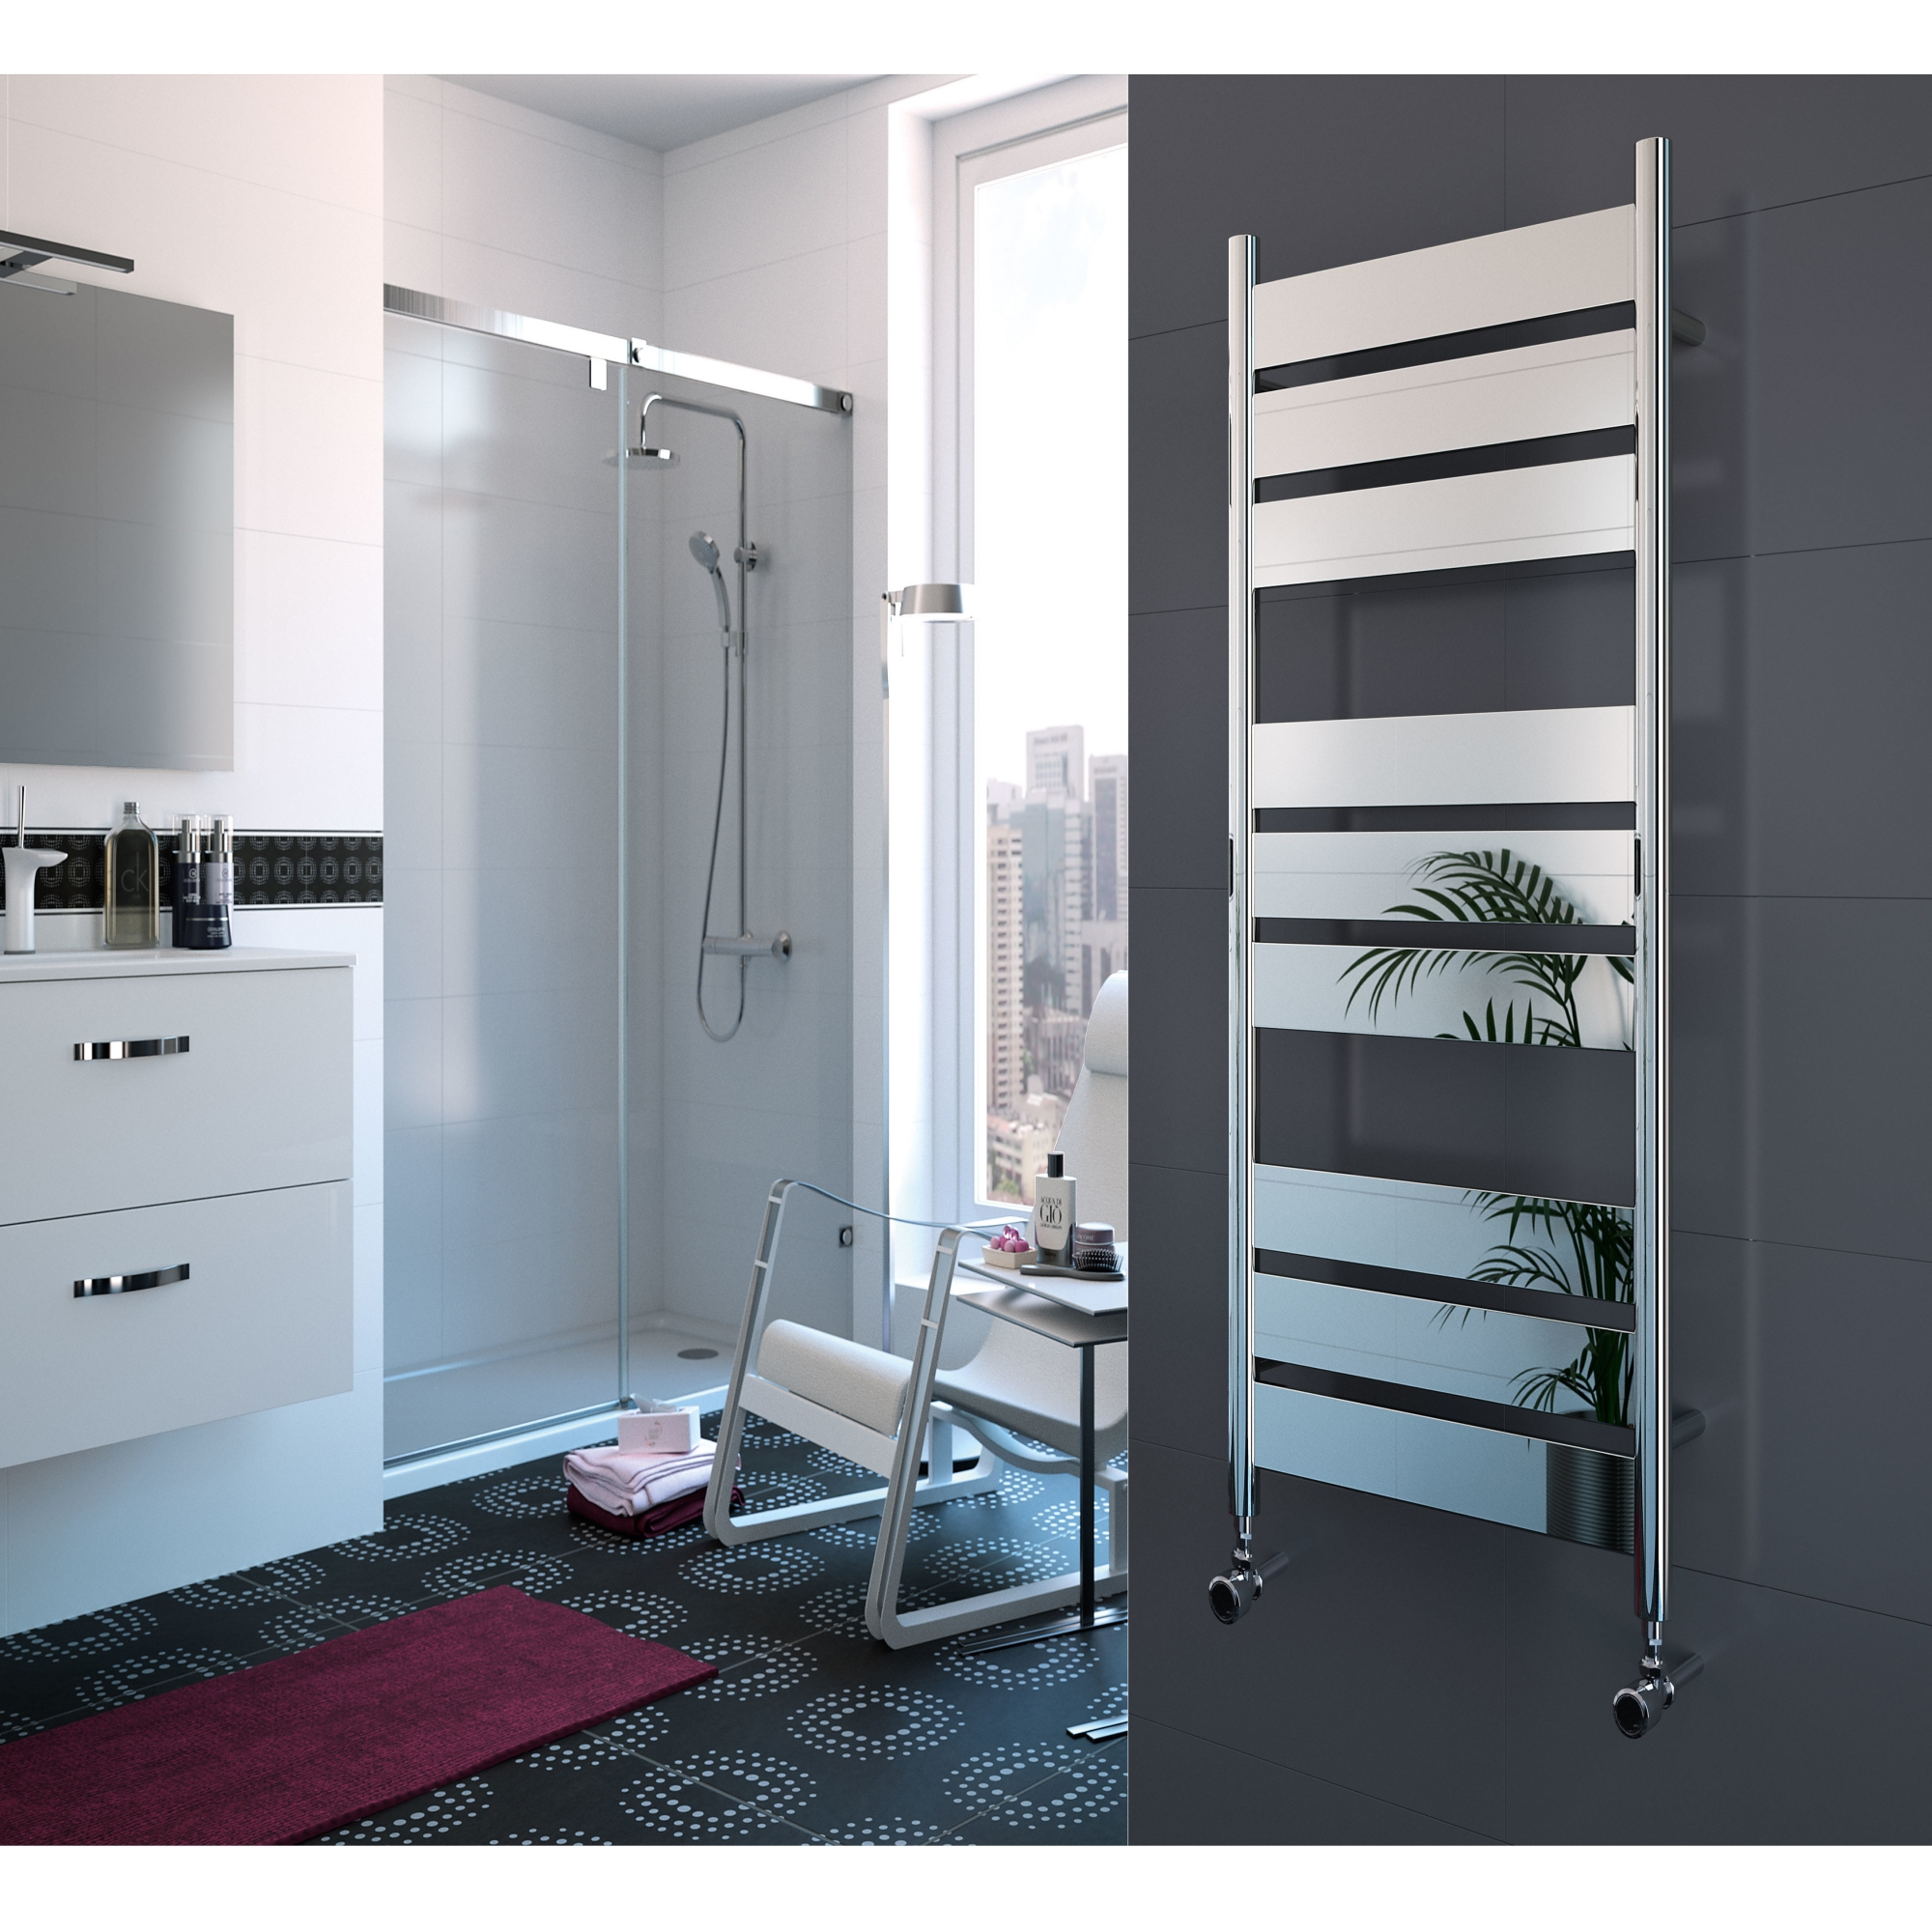 Radox Apollo Designer Heated Towel Rail 1050mm H x 500mm W Anthracite-0